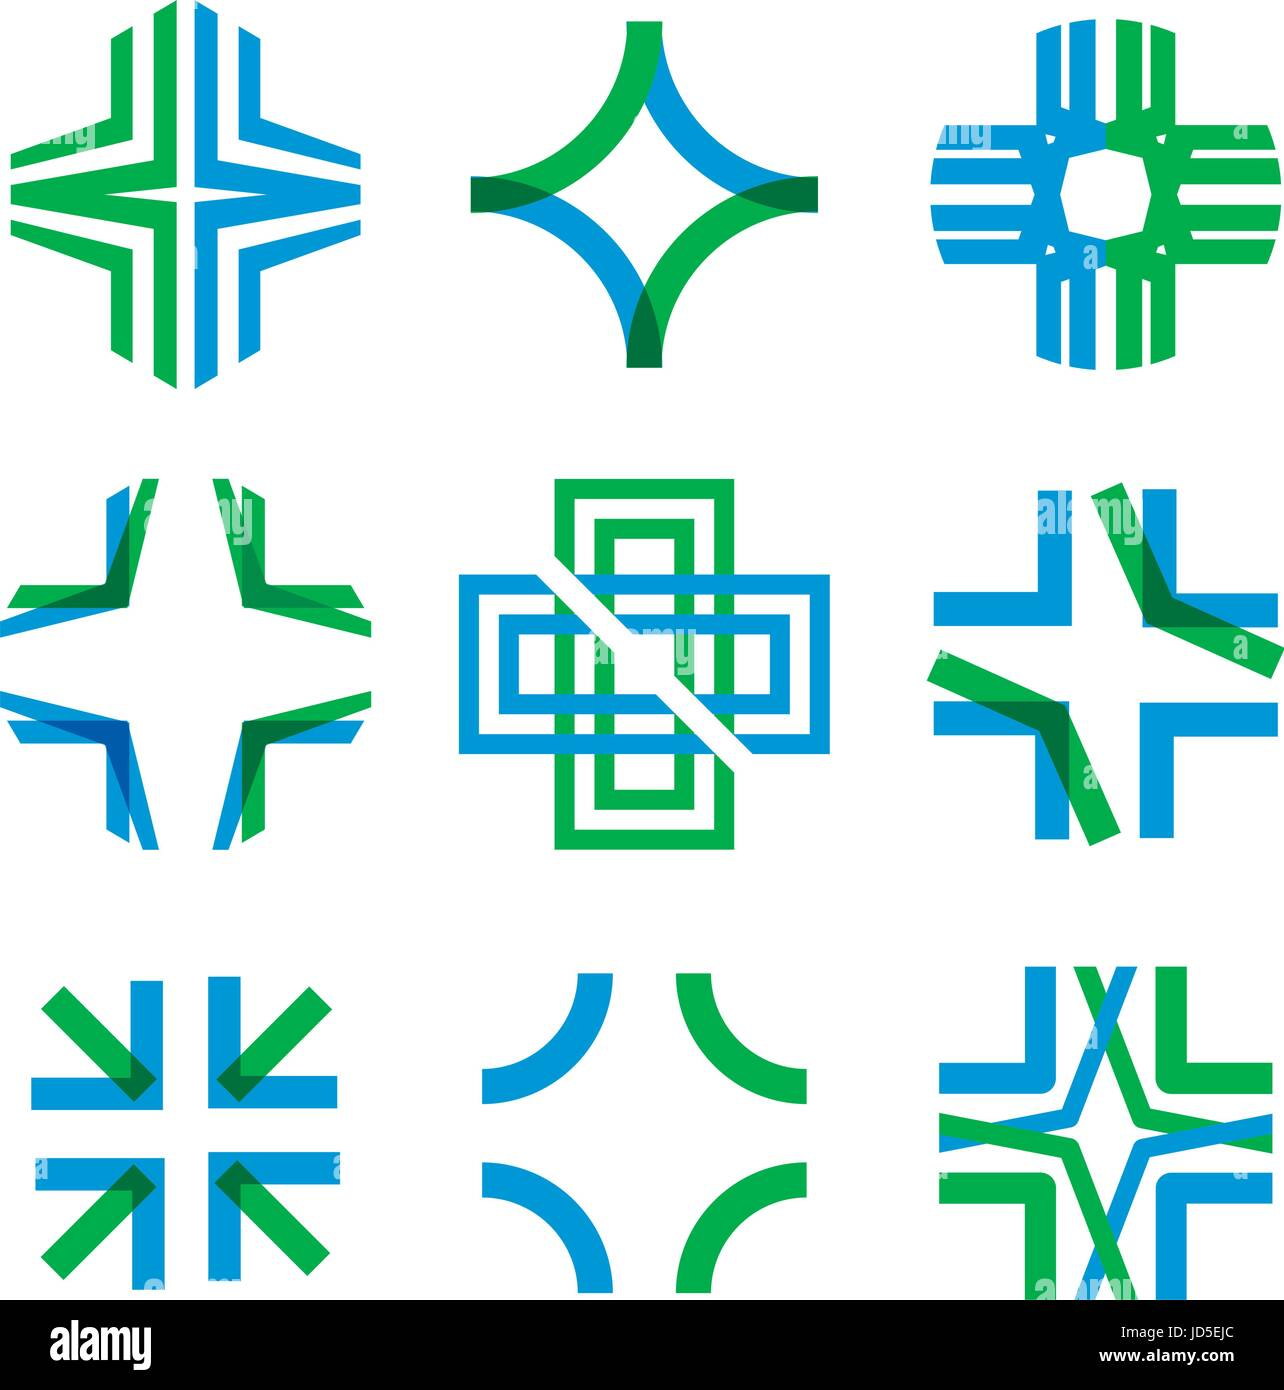 Intersecting Stock Vector Images Alamy